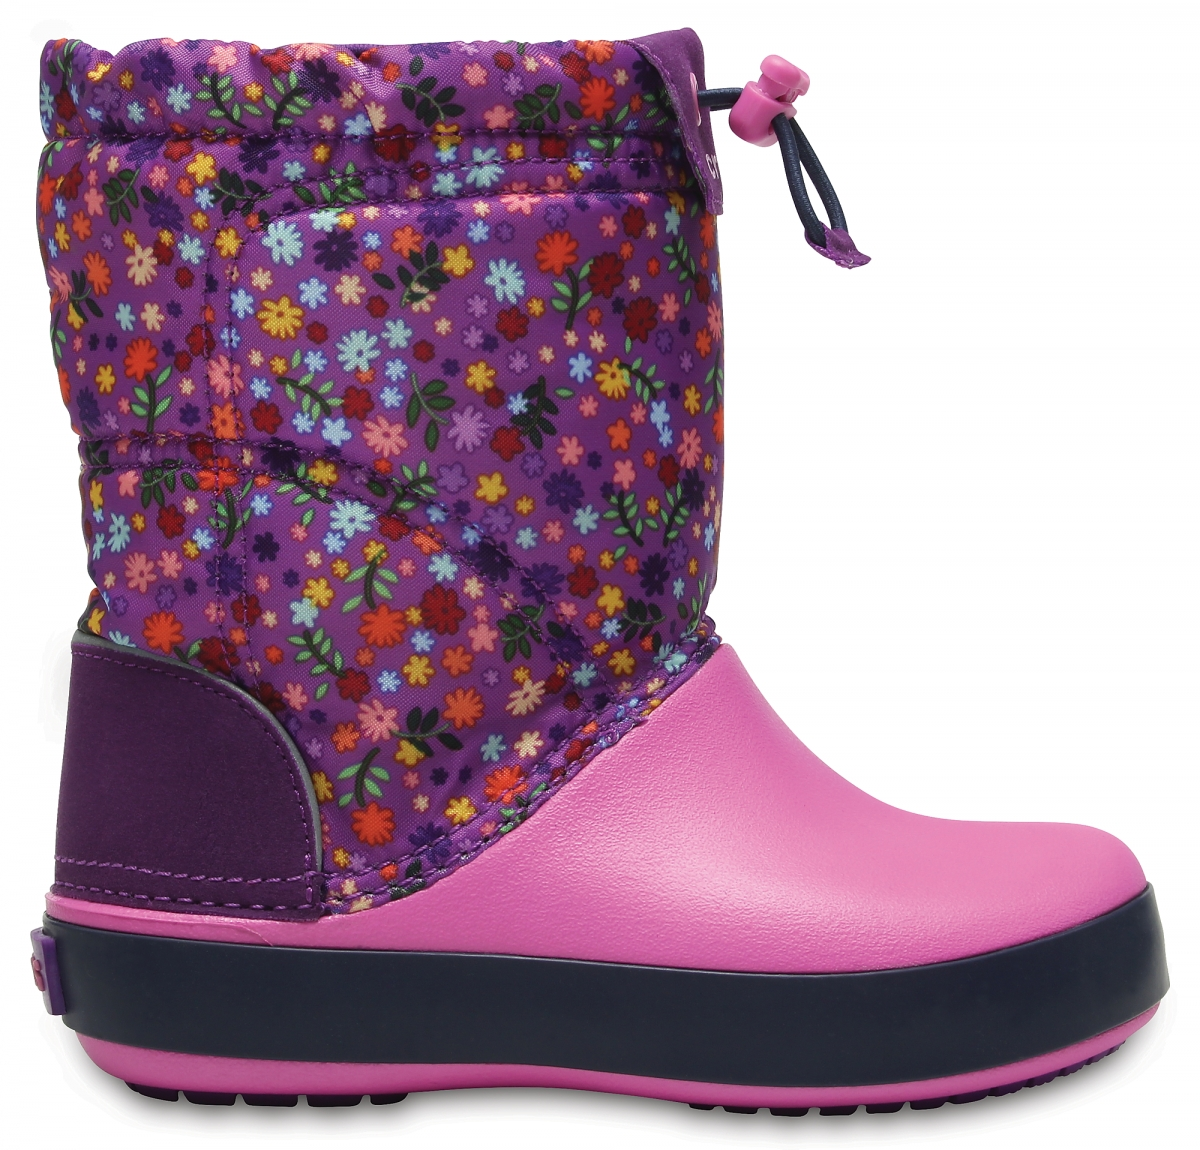 Crocs Crocband LodgePoint Graphic Boot Kids - Amethyst/Party Pink, J1 (32-33)